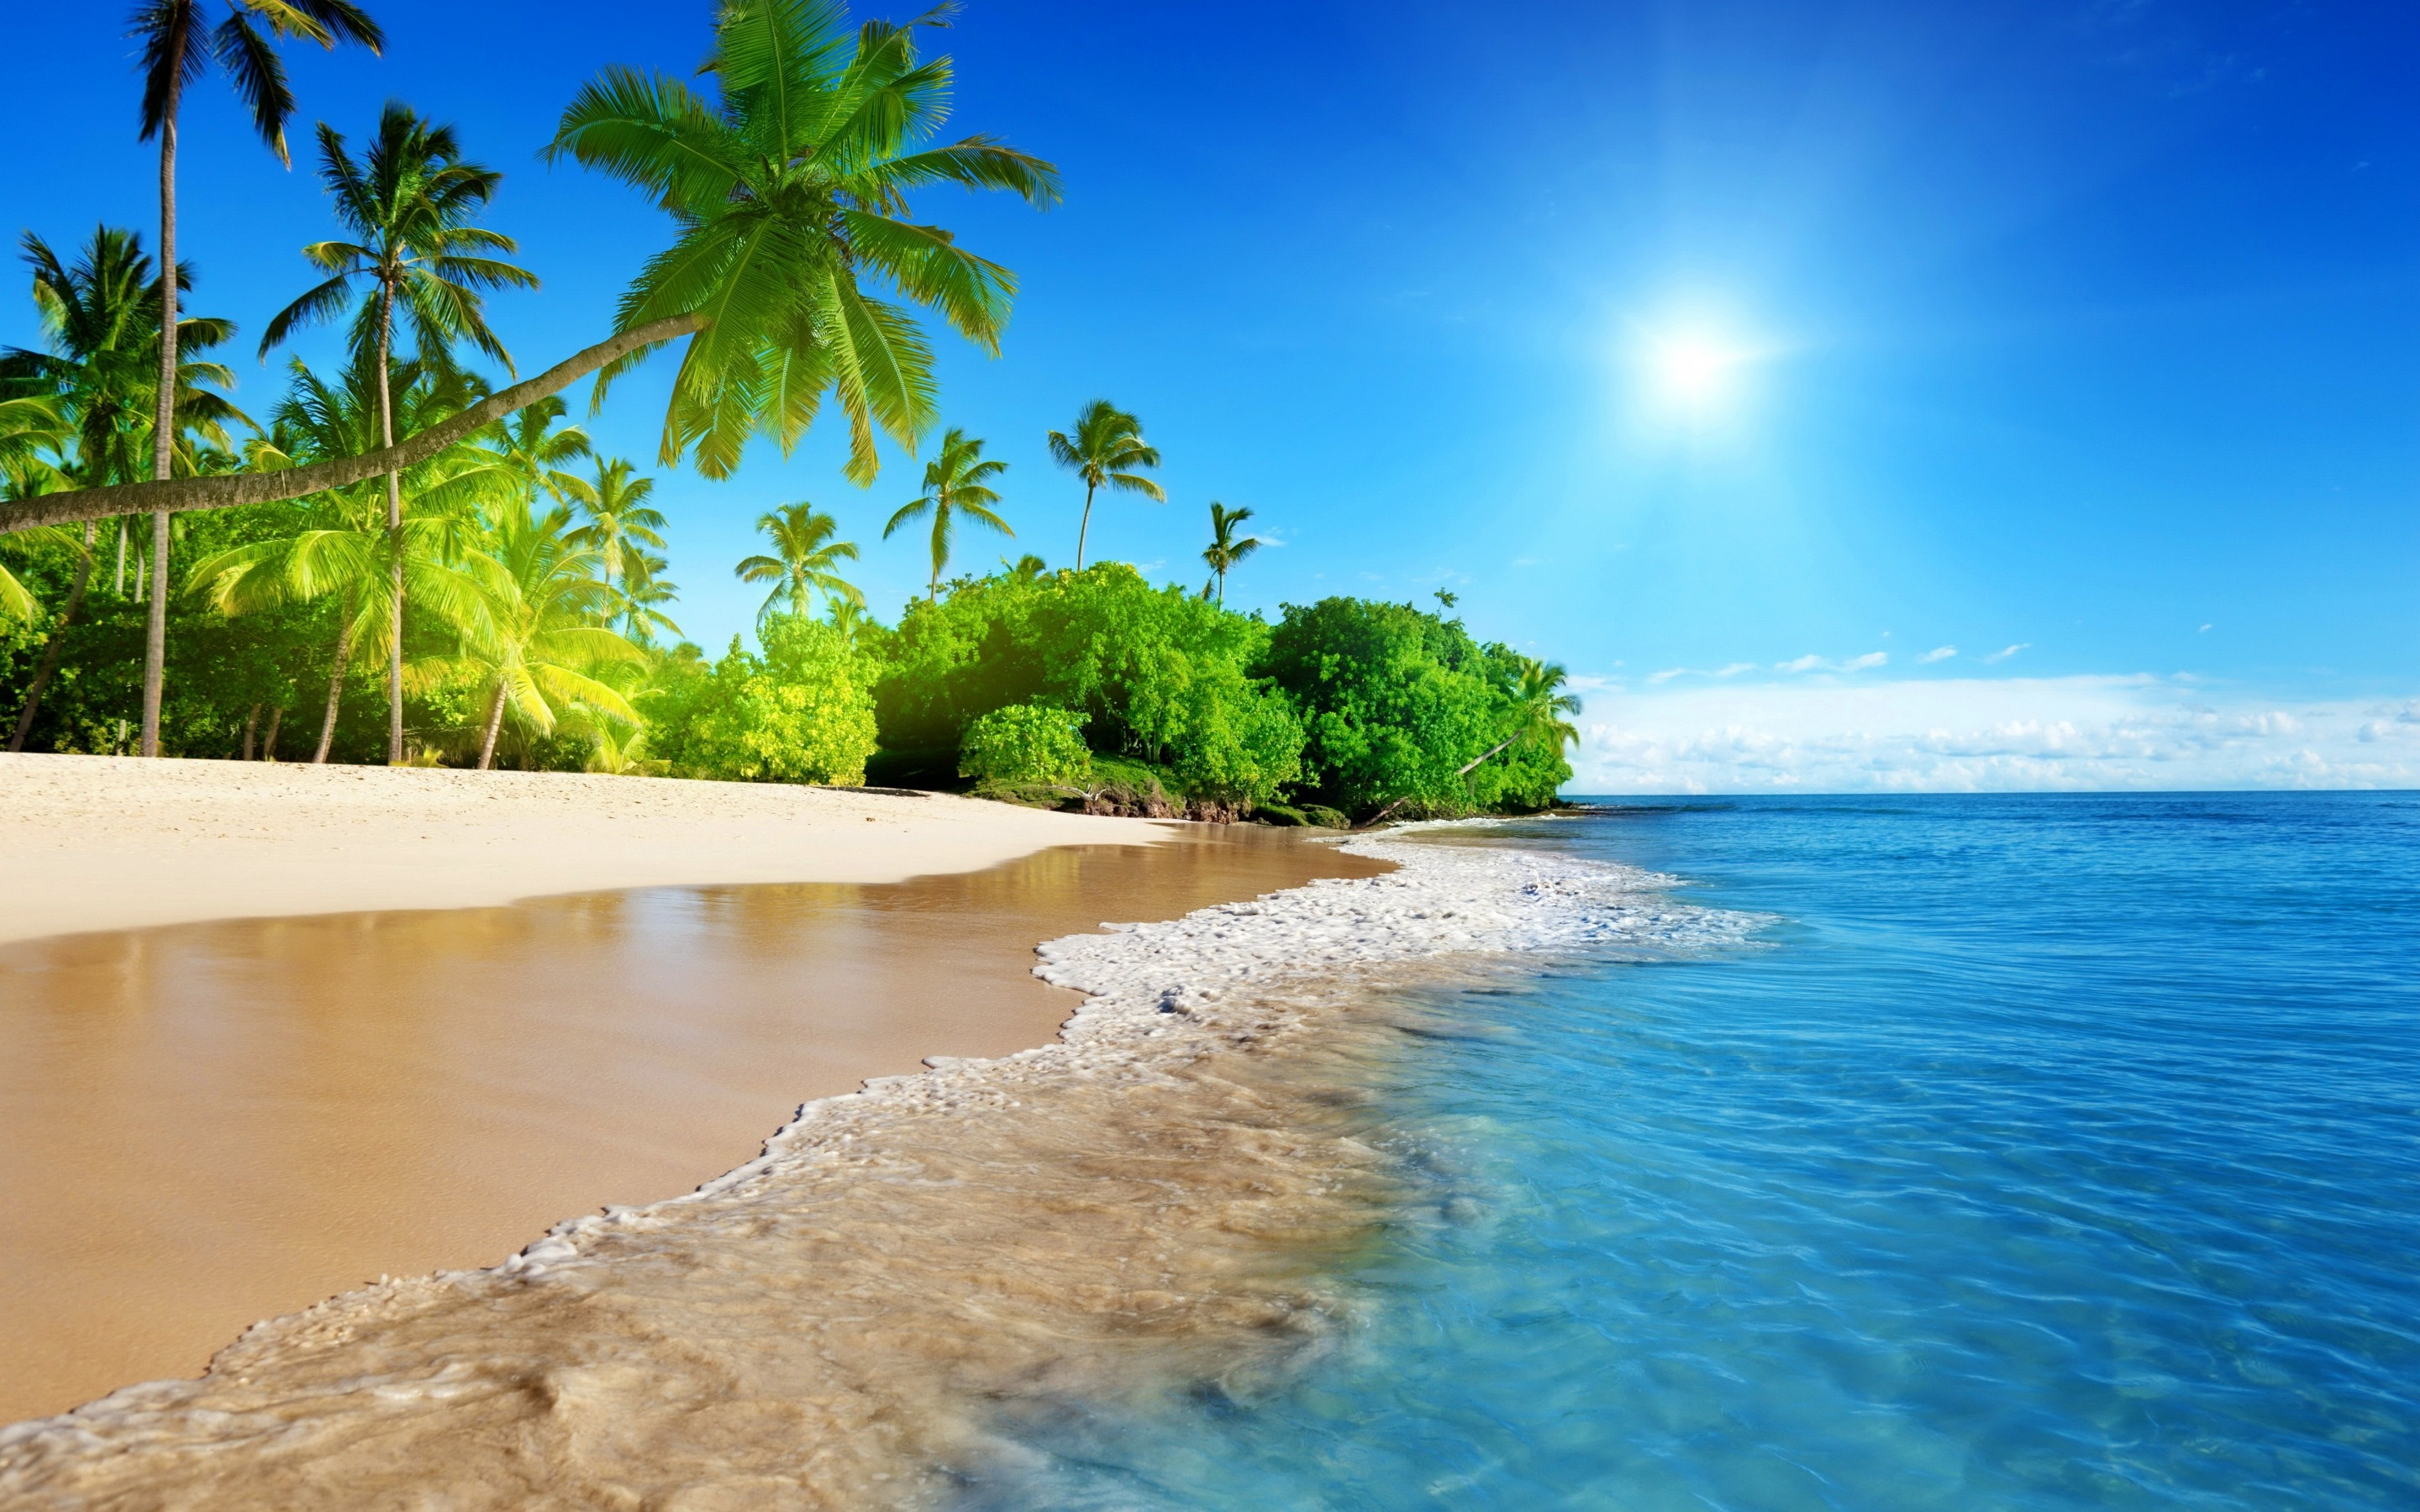 Beach Vacation Wallpaper